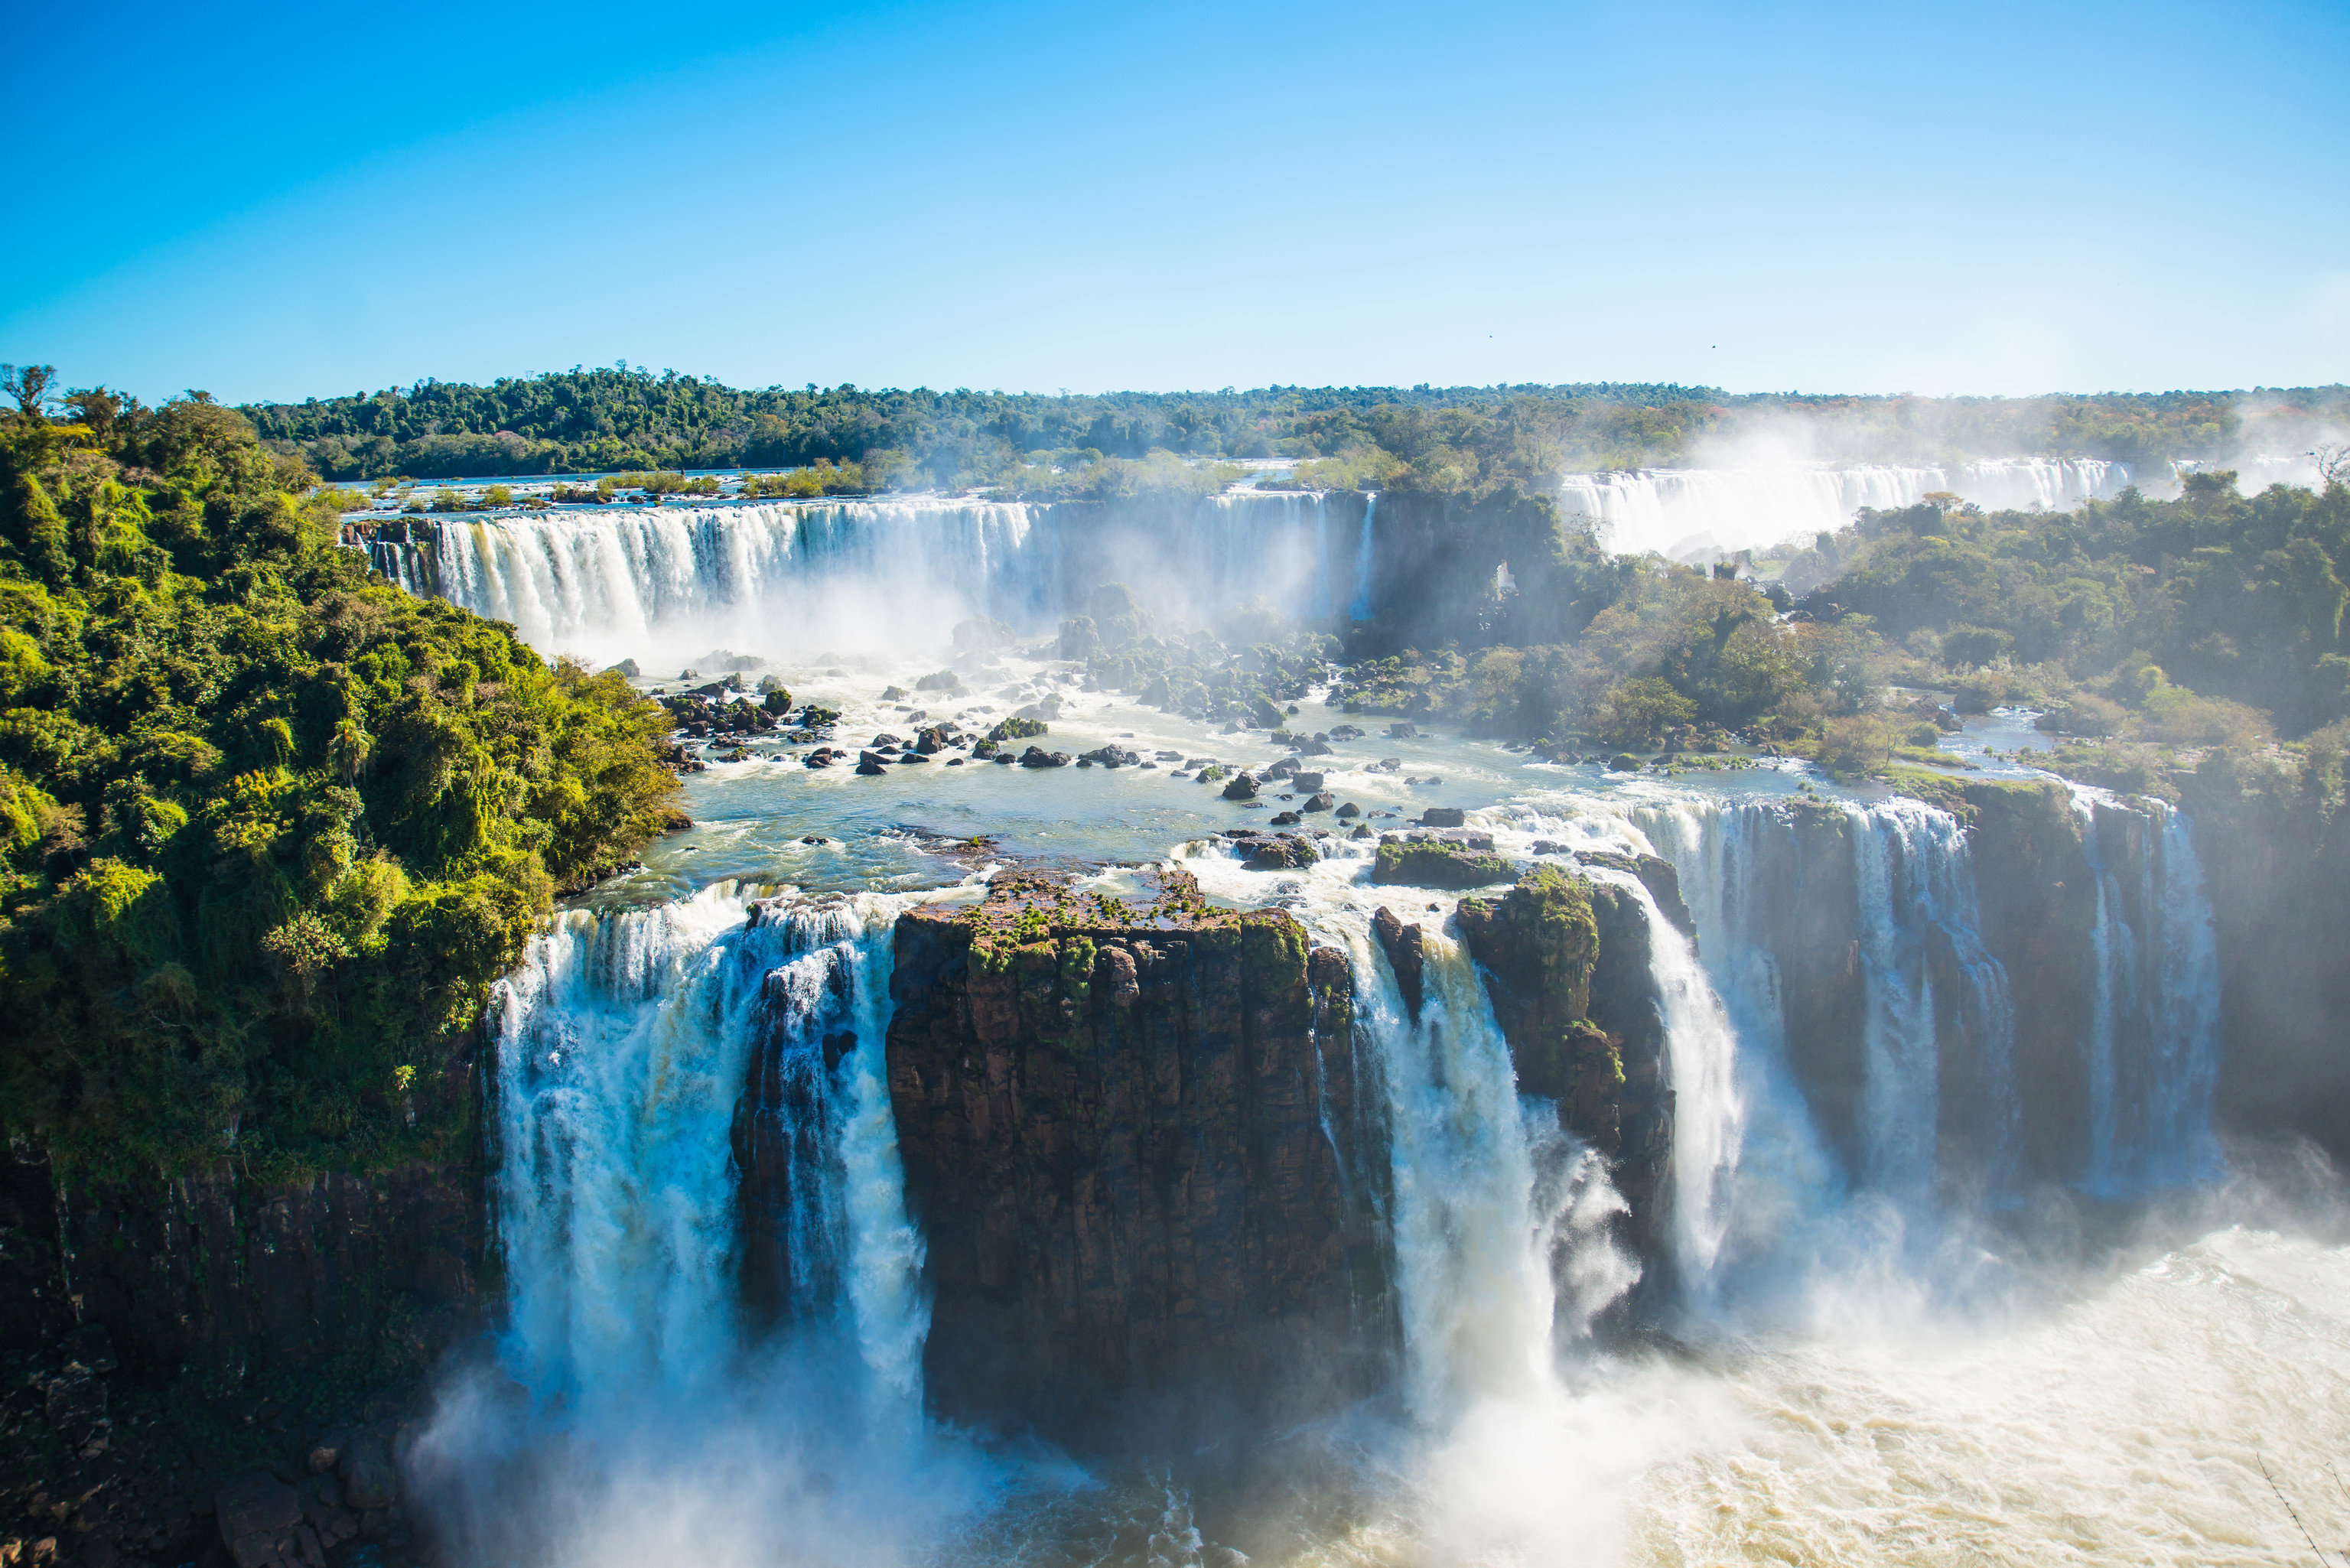 Boutique Hotels Hotels Luxury Travel National Parks Trip Ideas sky Nature Waterfall outdoor water body of water atmospheric phenomenon water feature River wasserfall reflection landscape